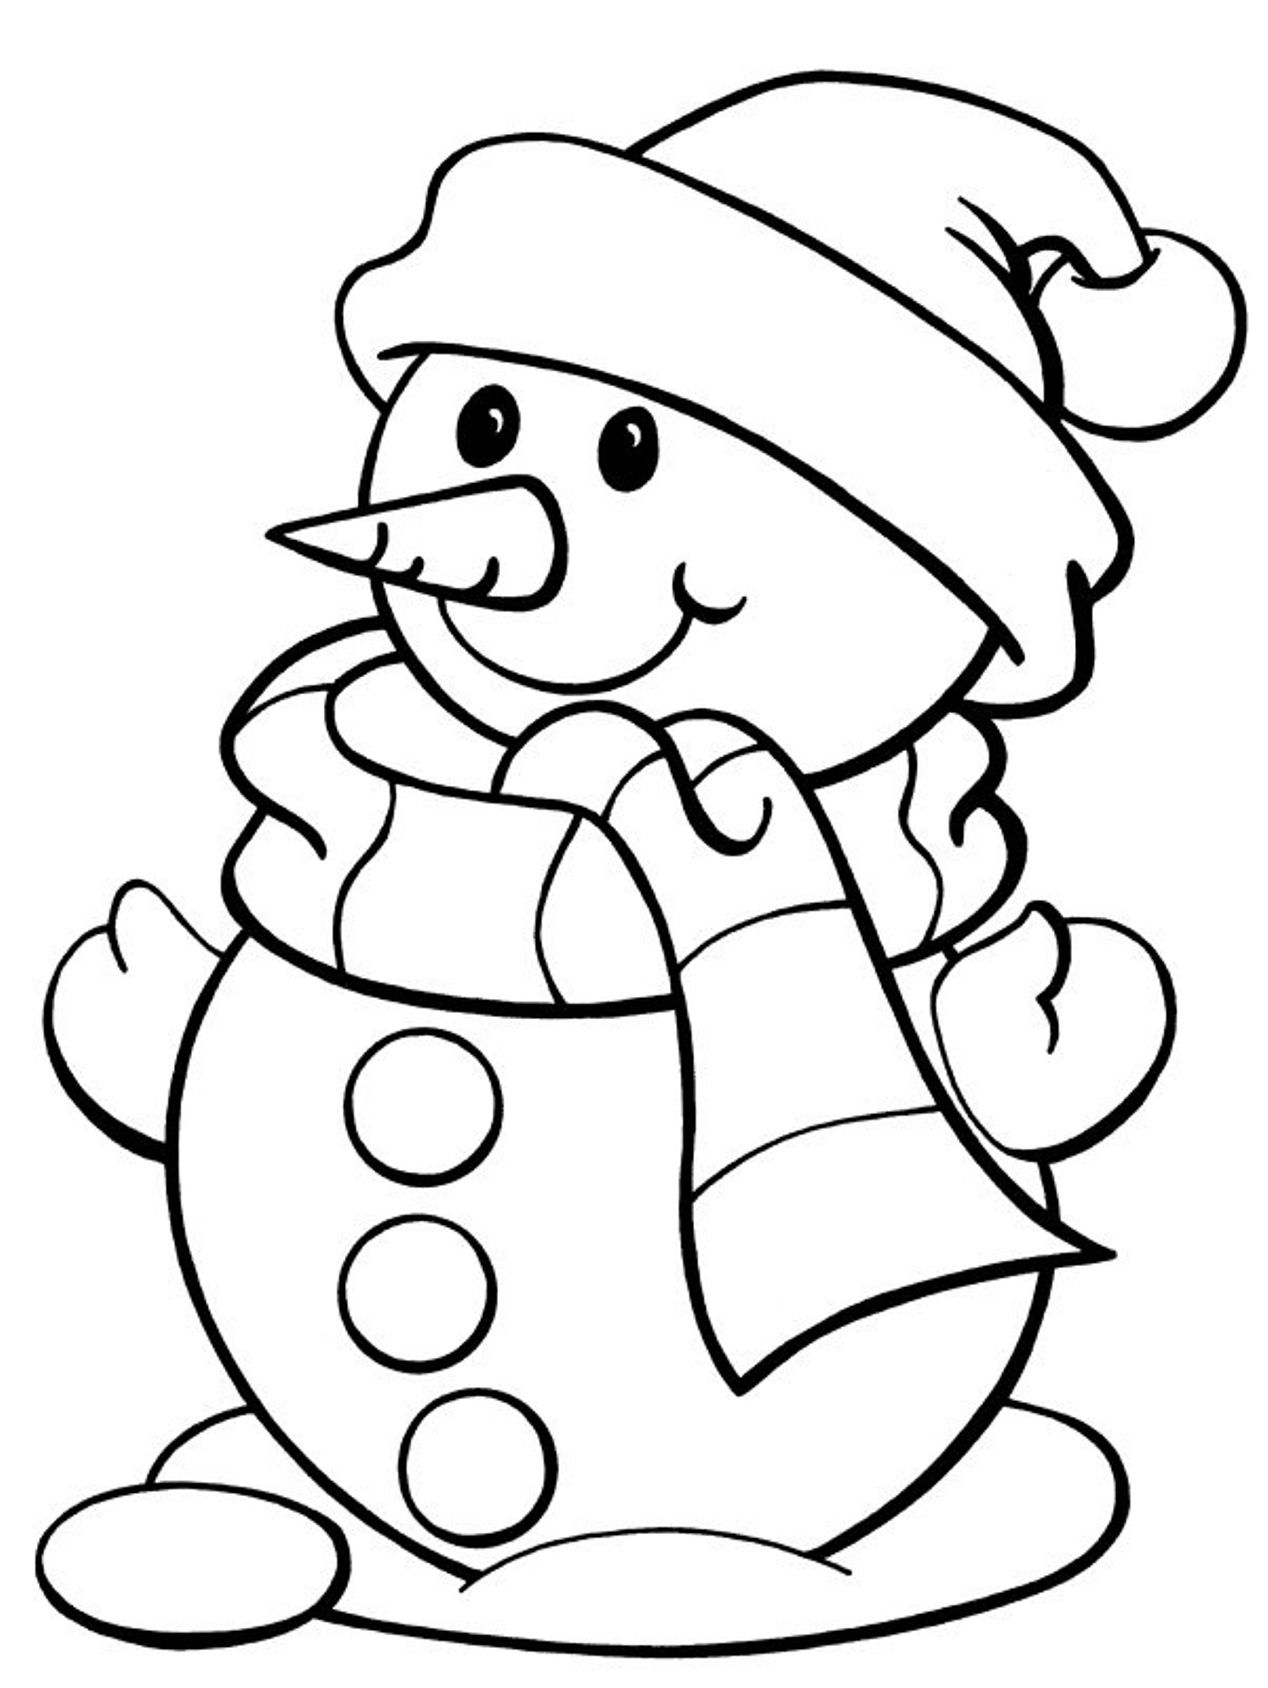 printable winter coloring pages winter coloring pages   Google Search | Winter party | Christmas  printable winter coloring pages